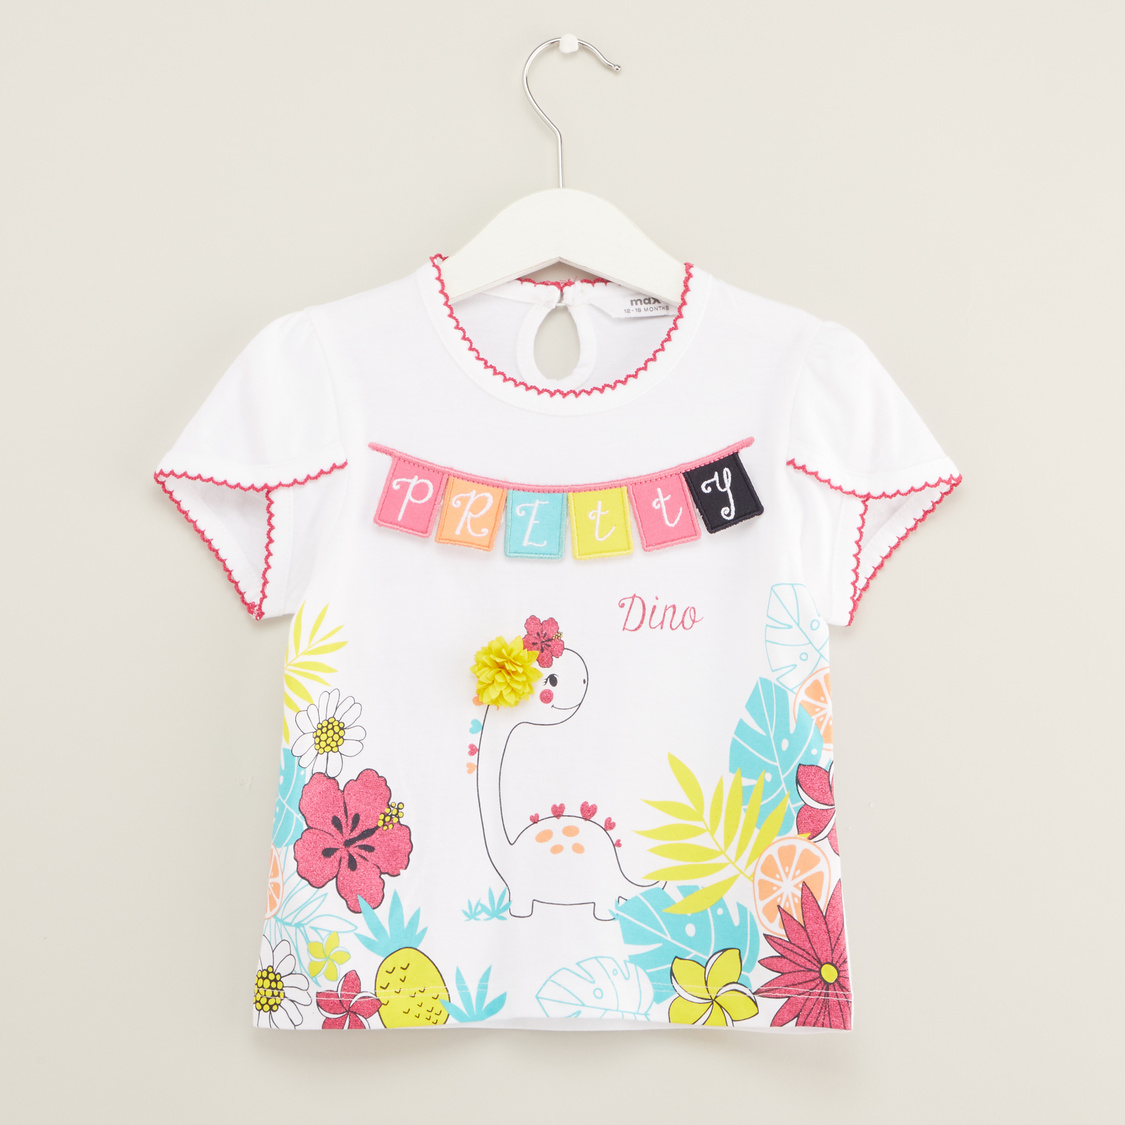 Applique Detail T-shirt with Round Neck and Short Sleeves